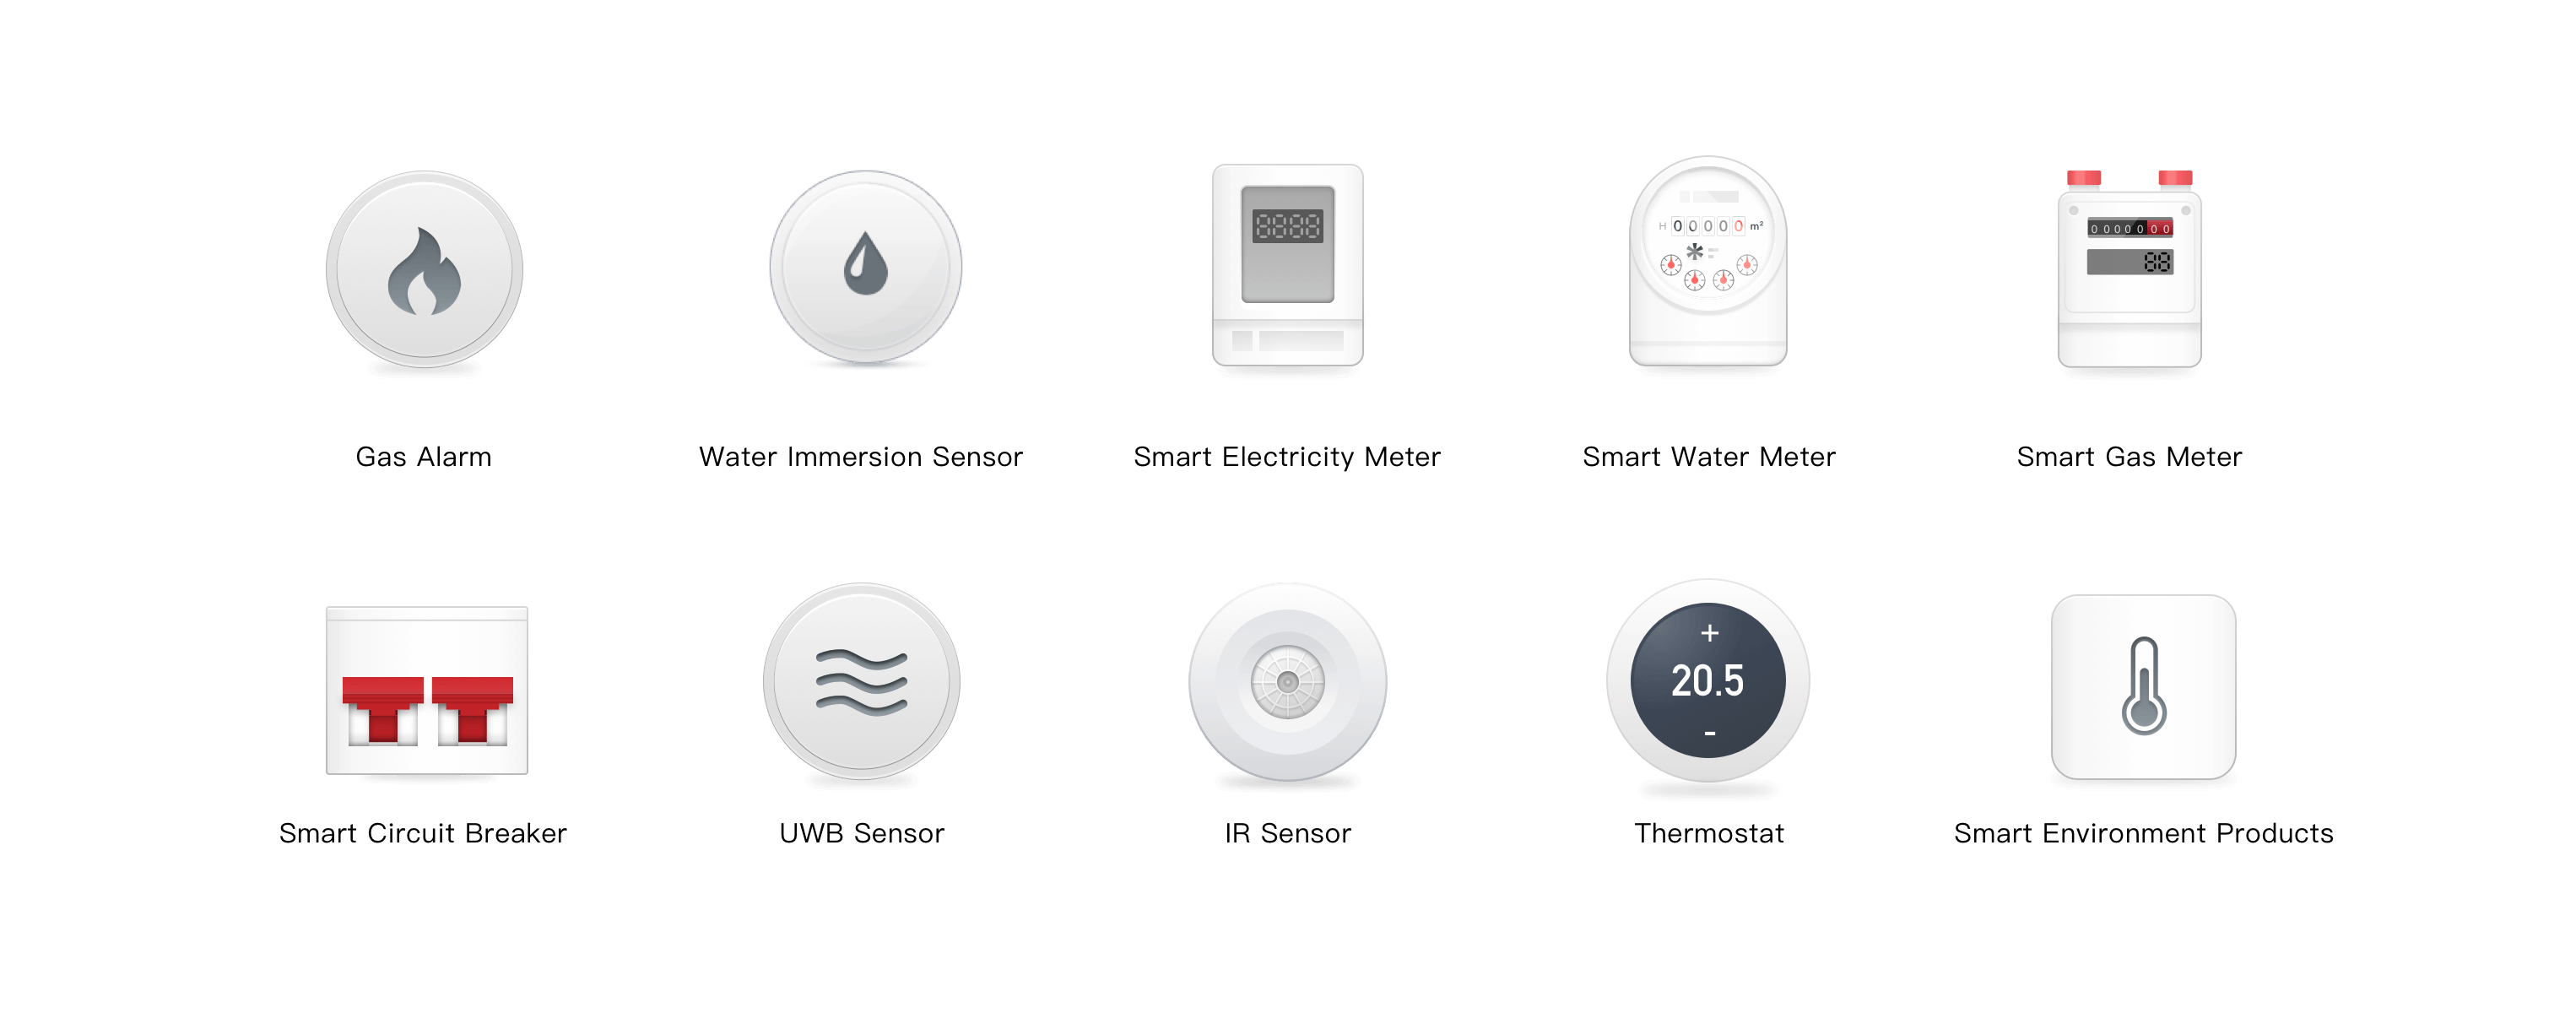 Diversified Hardware Product Ecosystem